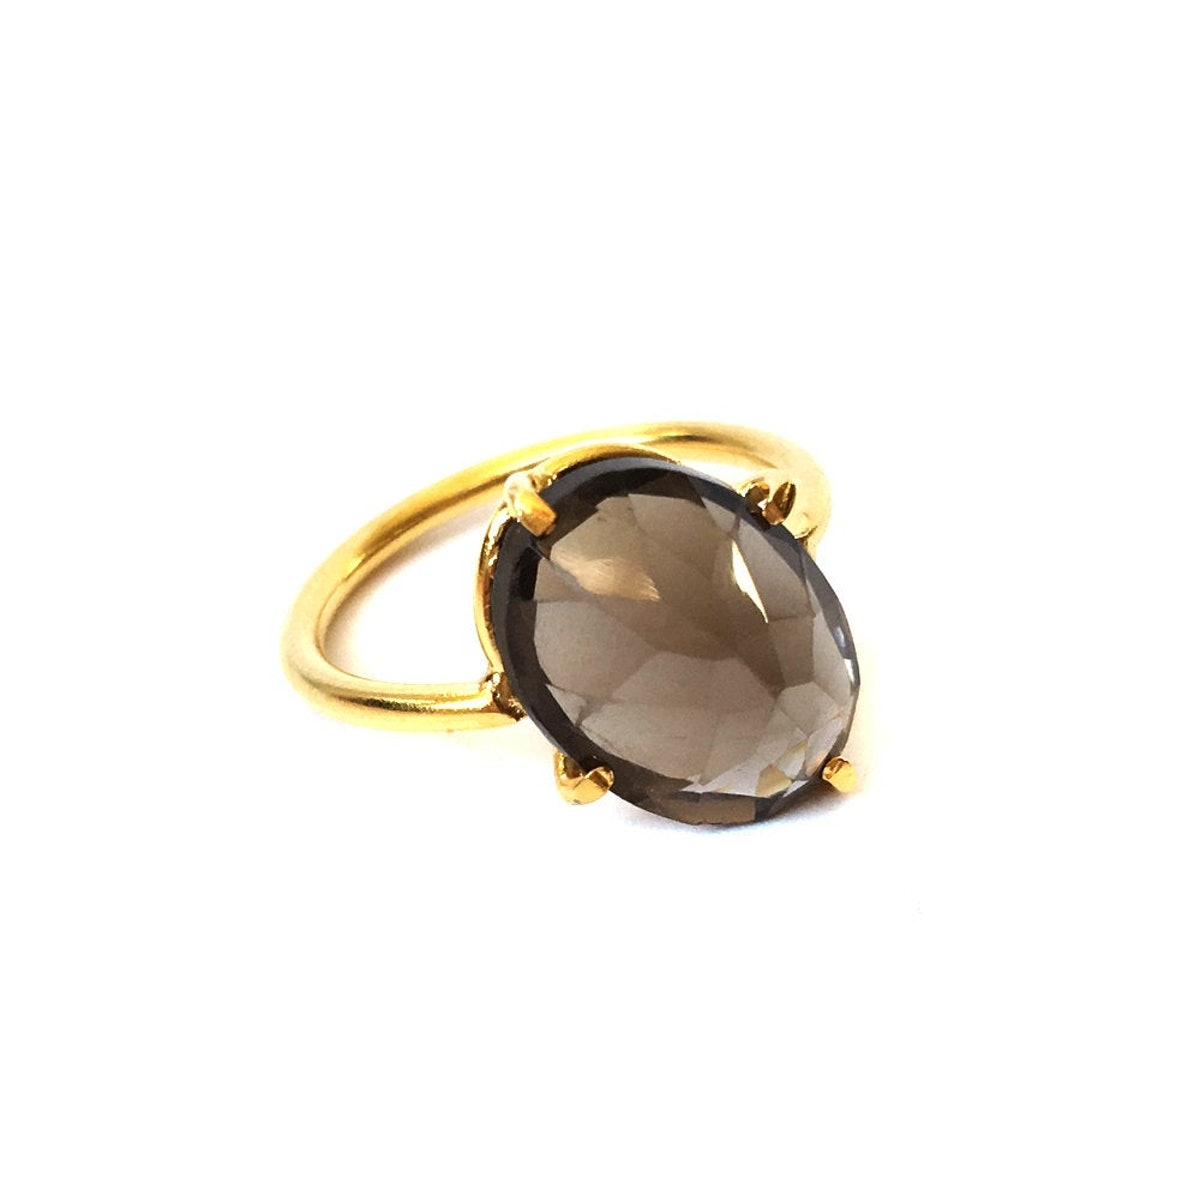 Smoky Quartz Ring With An Angled Claw Setting